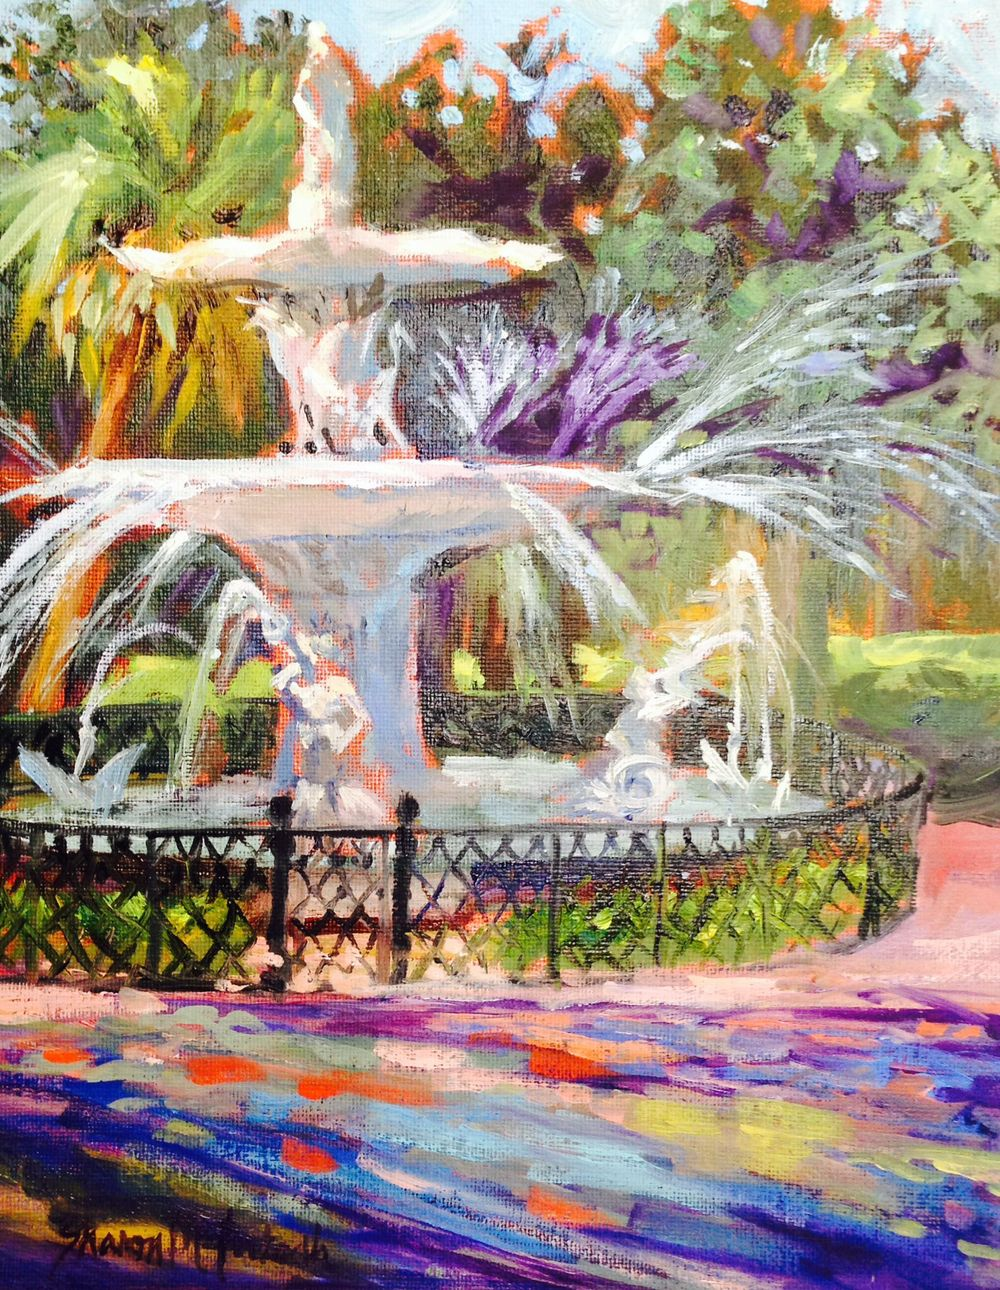 I have been painting in Forsyth Park for years...too many to tell. This painting placed 2nd in Oils in the Spring Show at the Landings Art Association